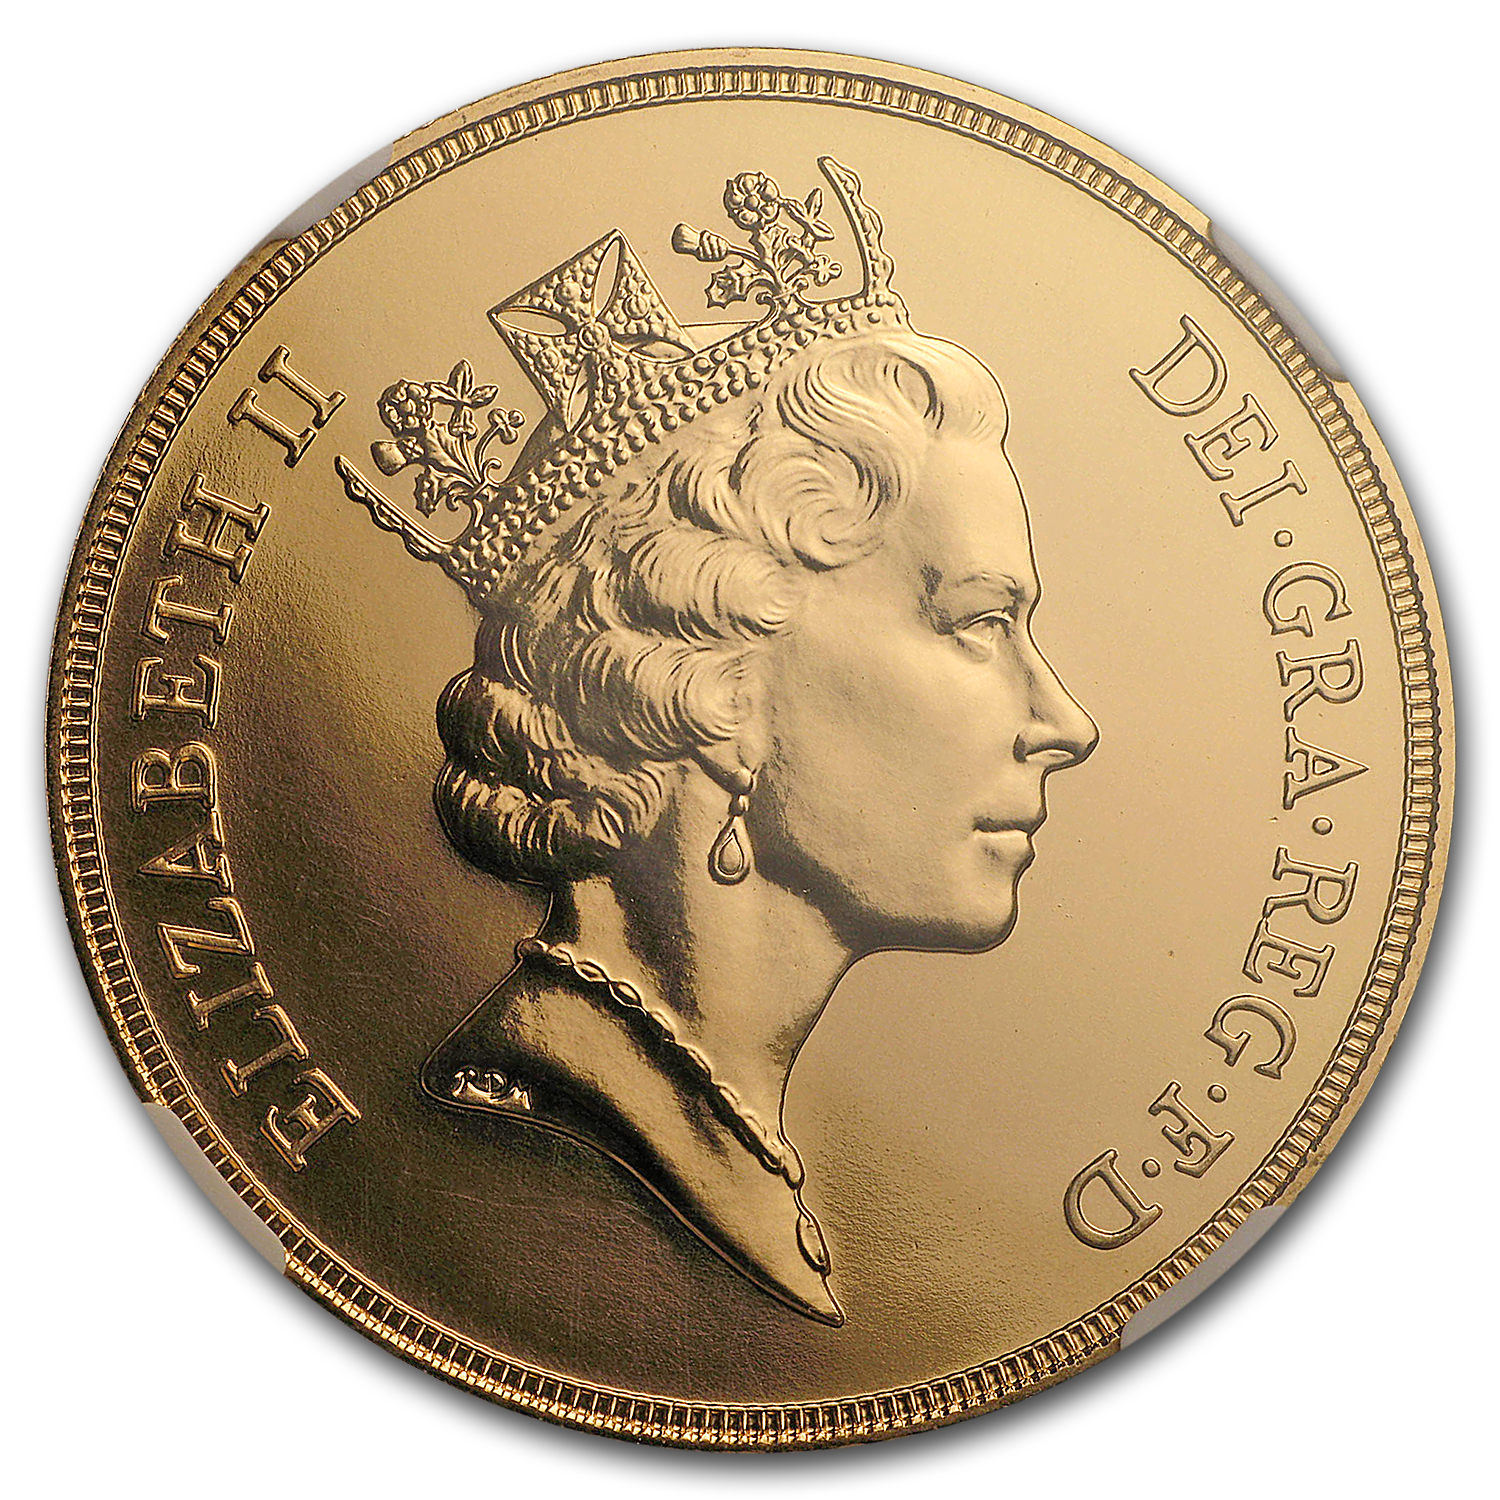 1985 Great Britain Gold £5 Sov MS-69 NGC